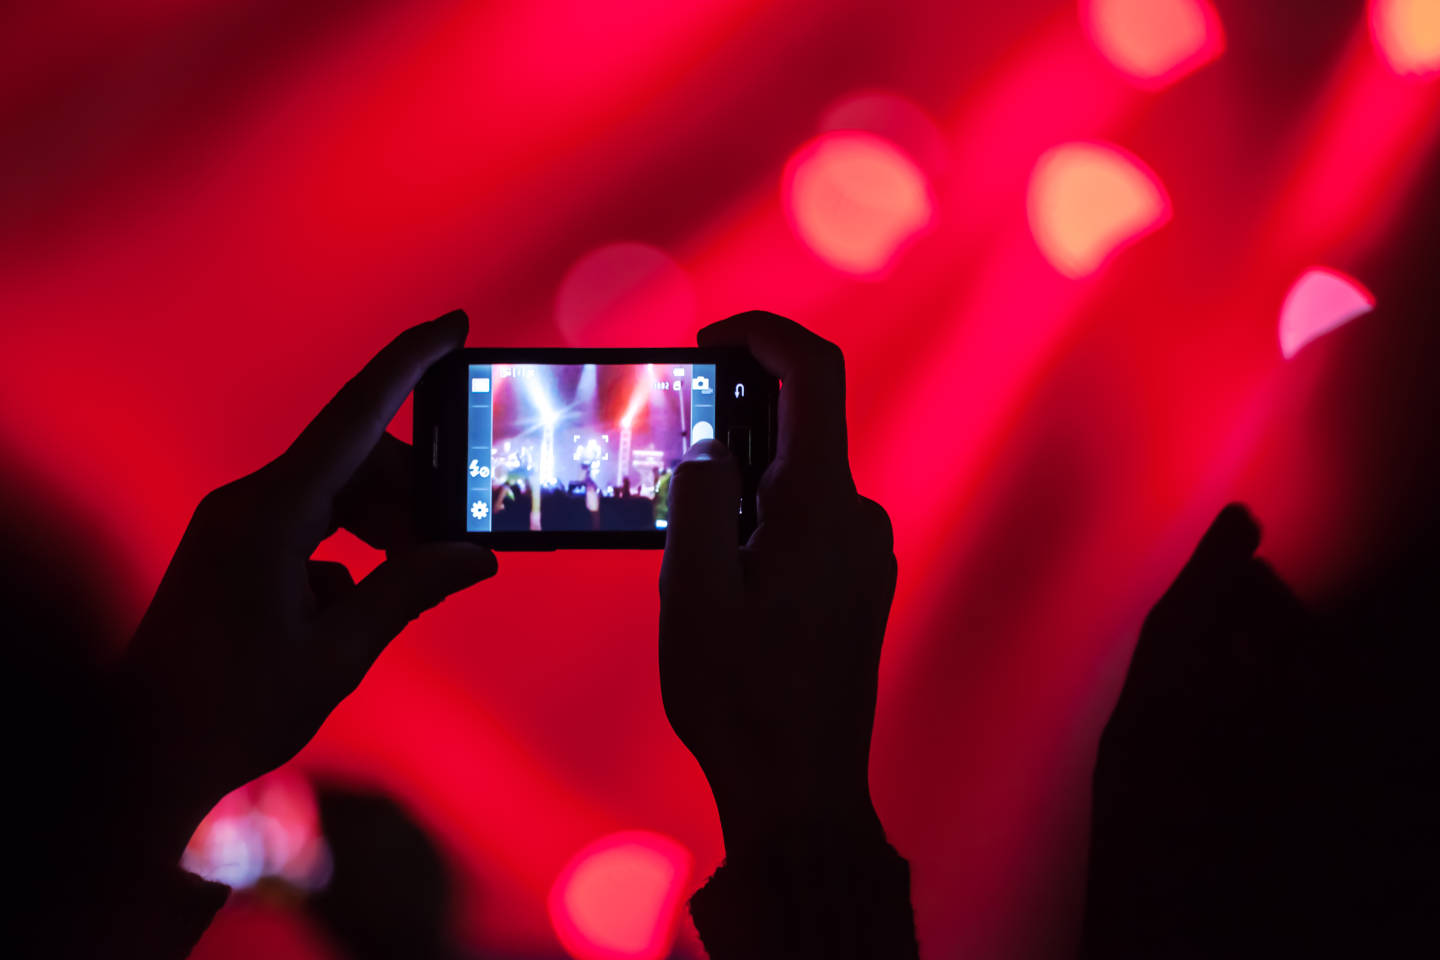 shooting a video at a concert